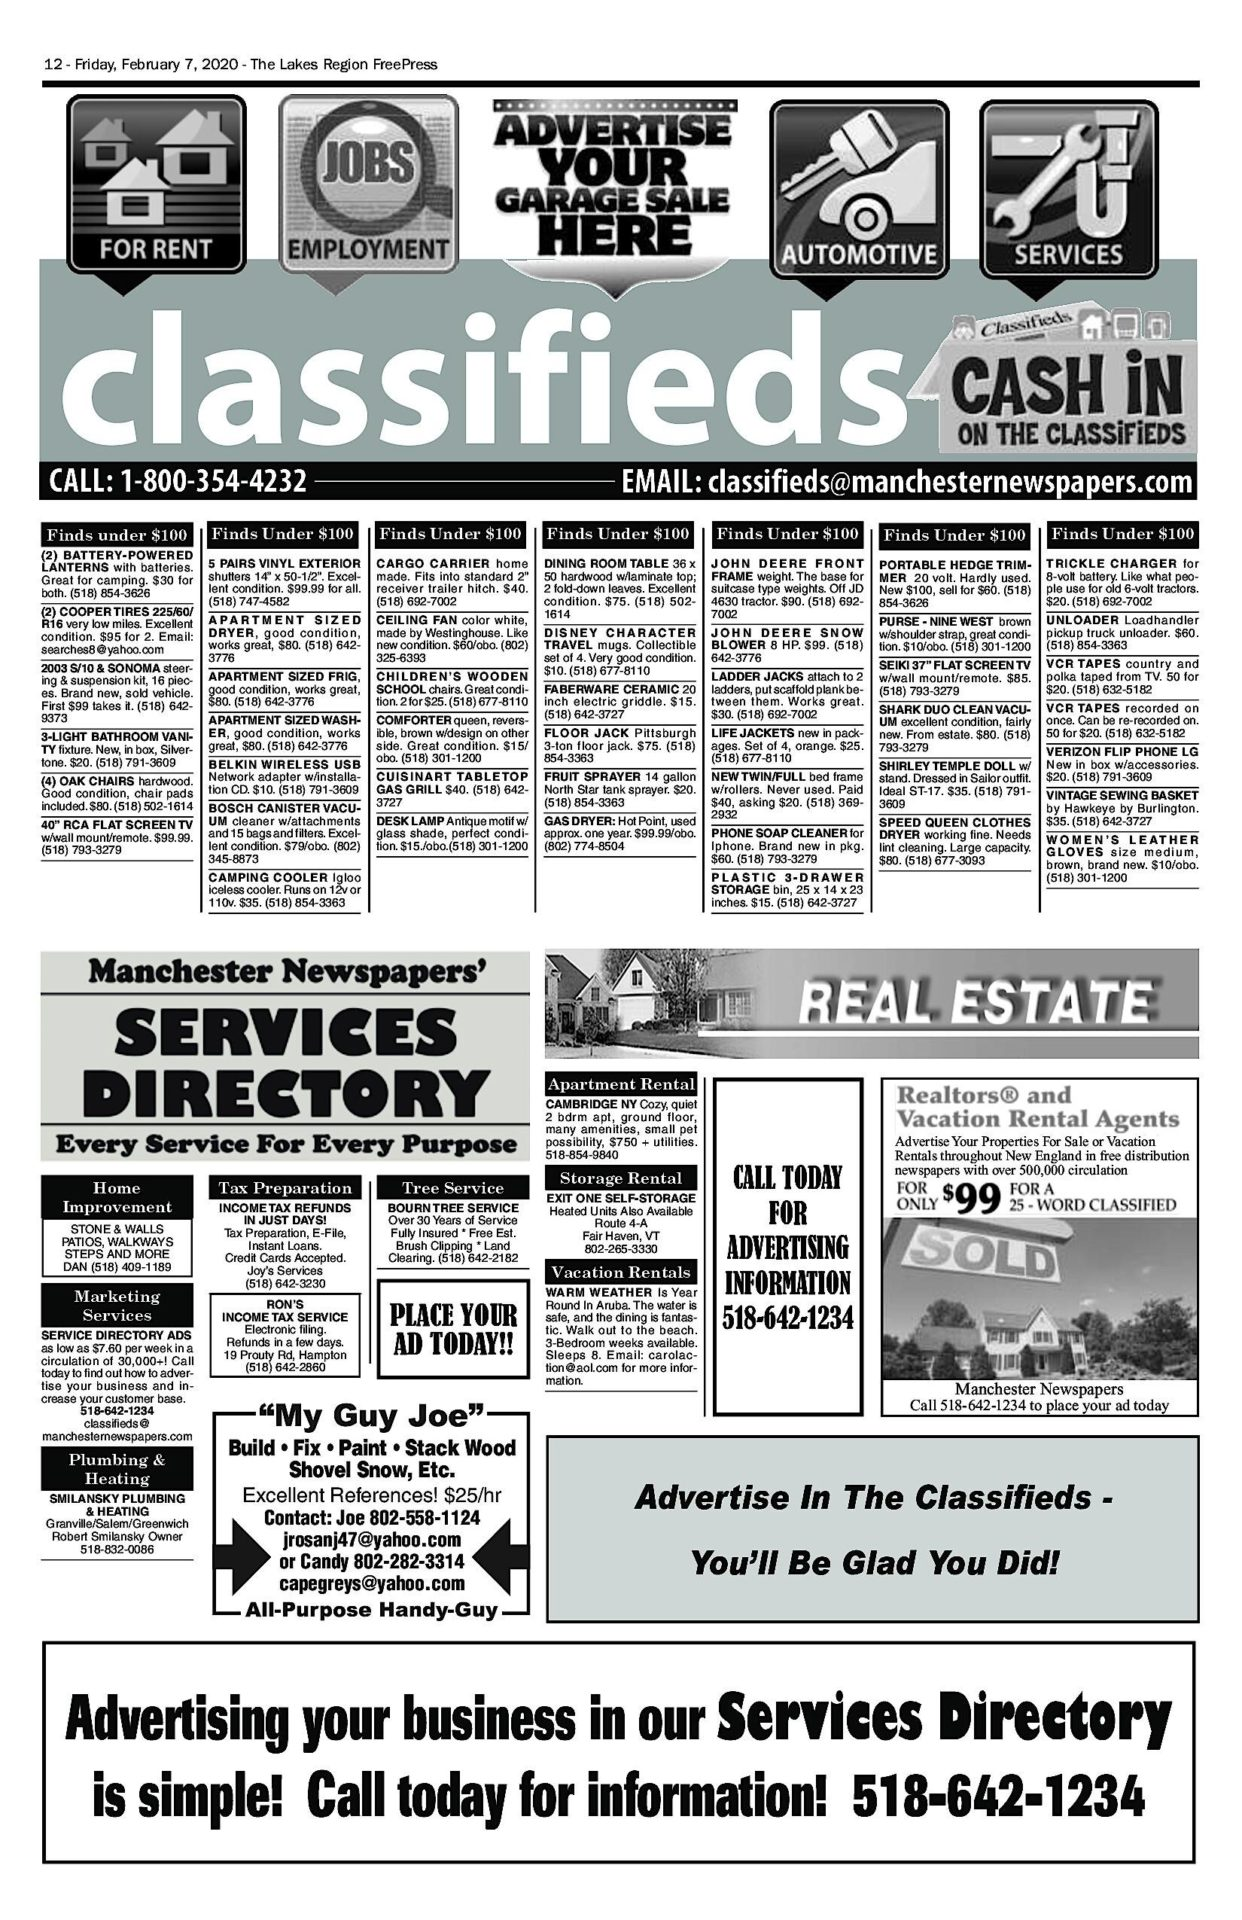 Lakes Classifieds – 02/07/20